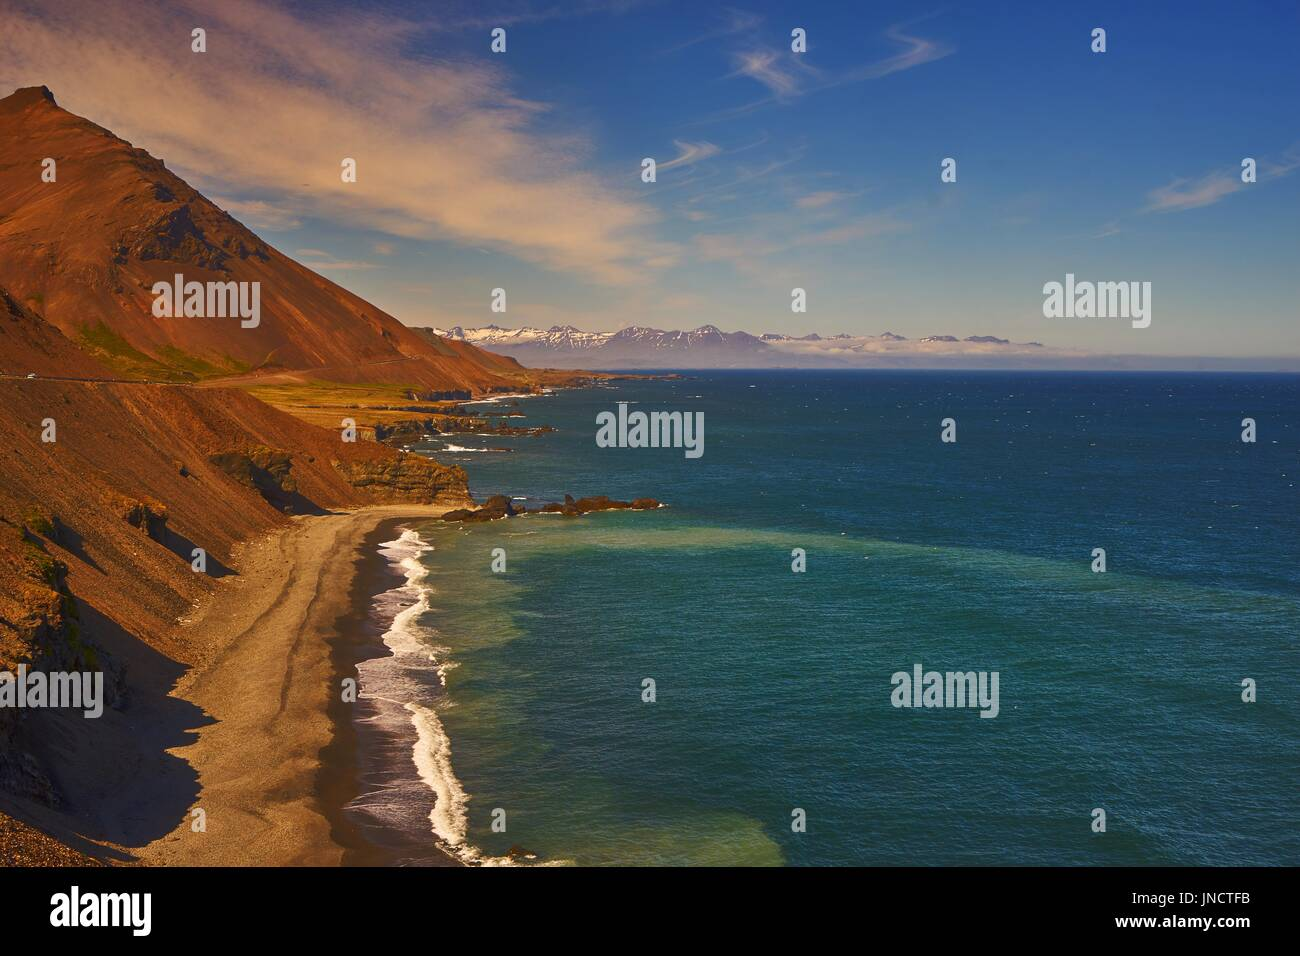 Beach at the east coast of Iceland - Stock Image